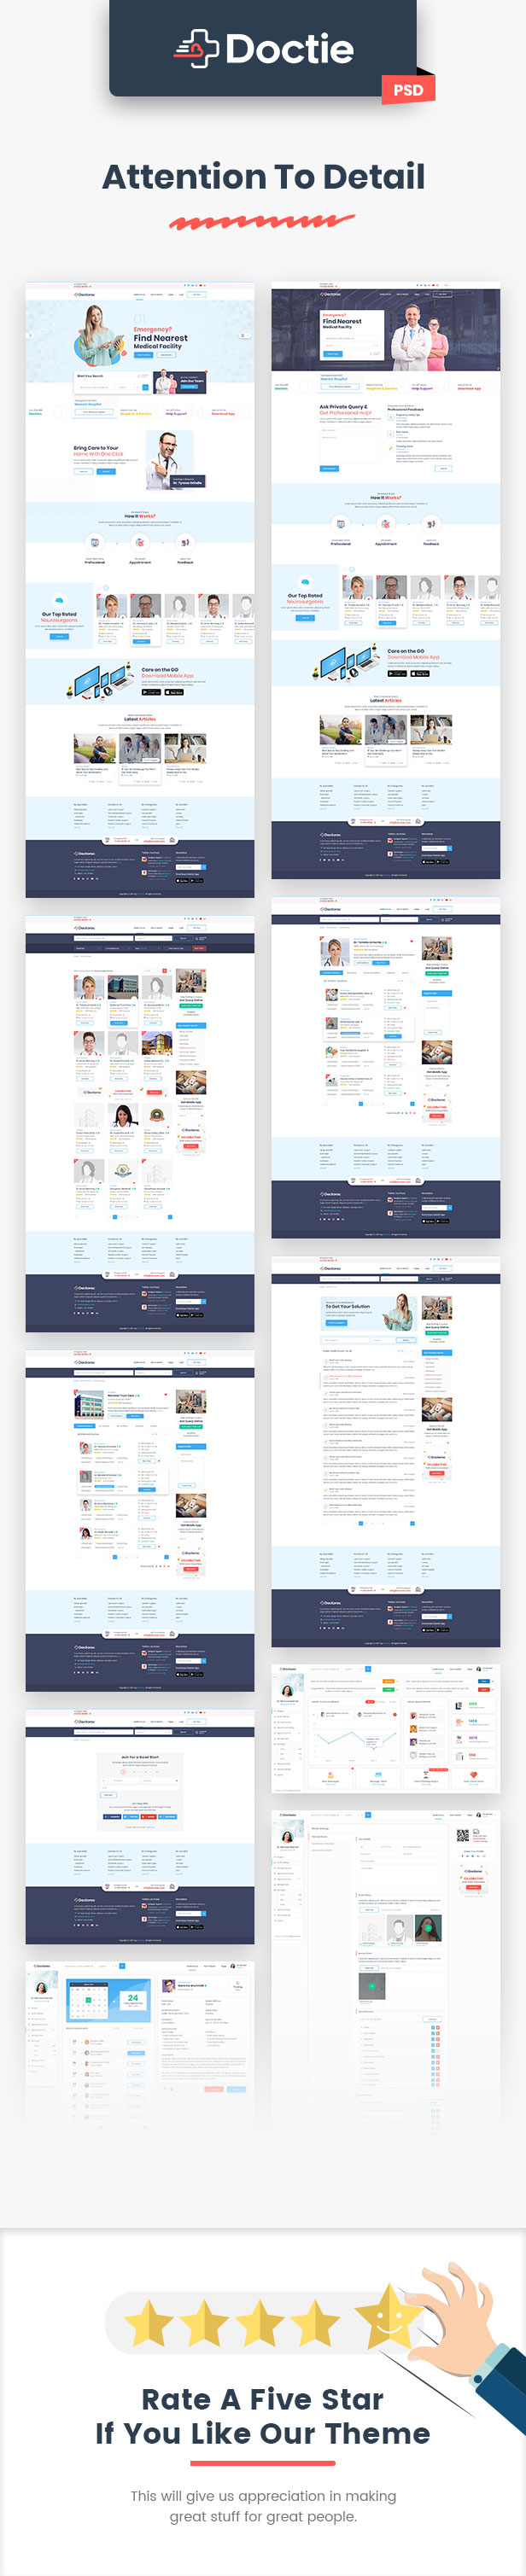 Doctoroc - Medical and Doctor Directory PSD Template - 4